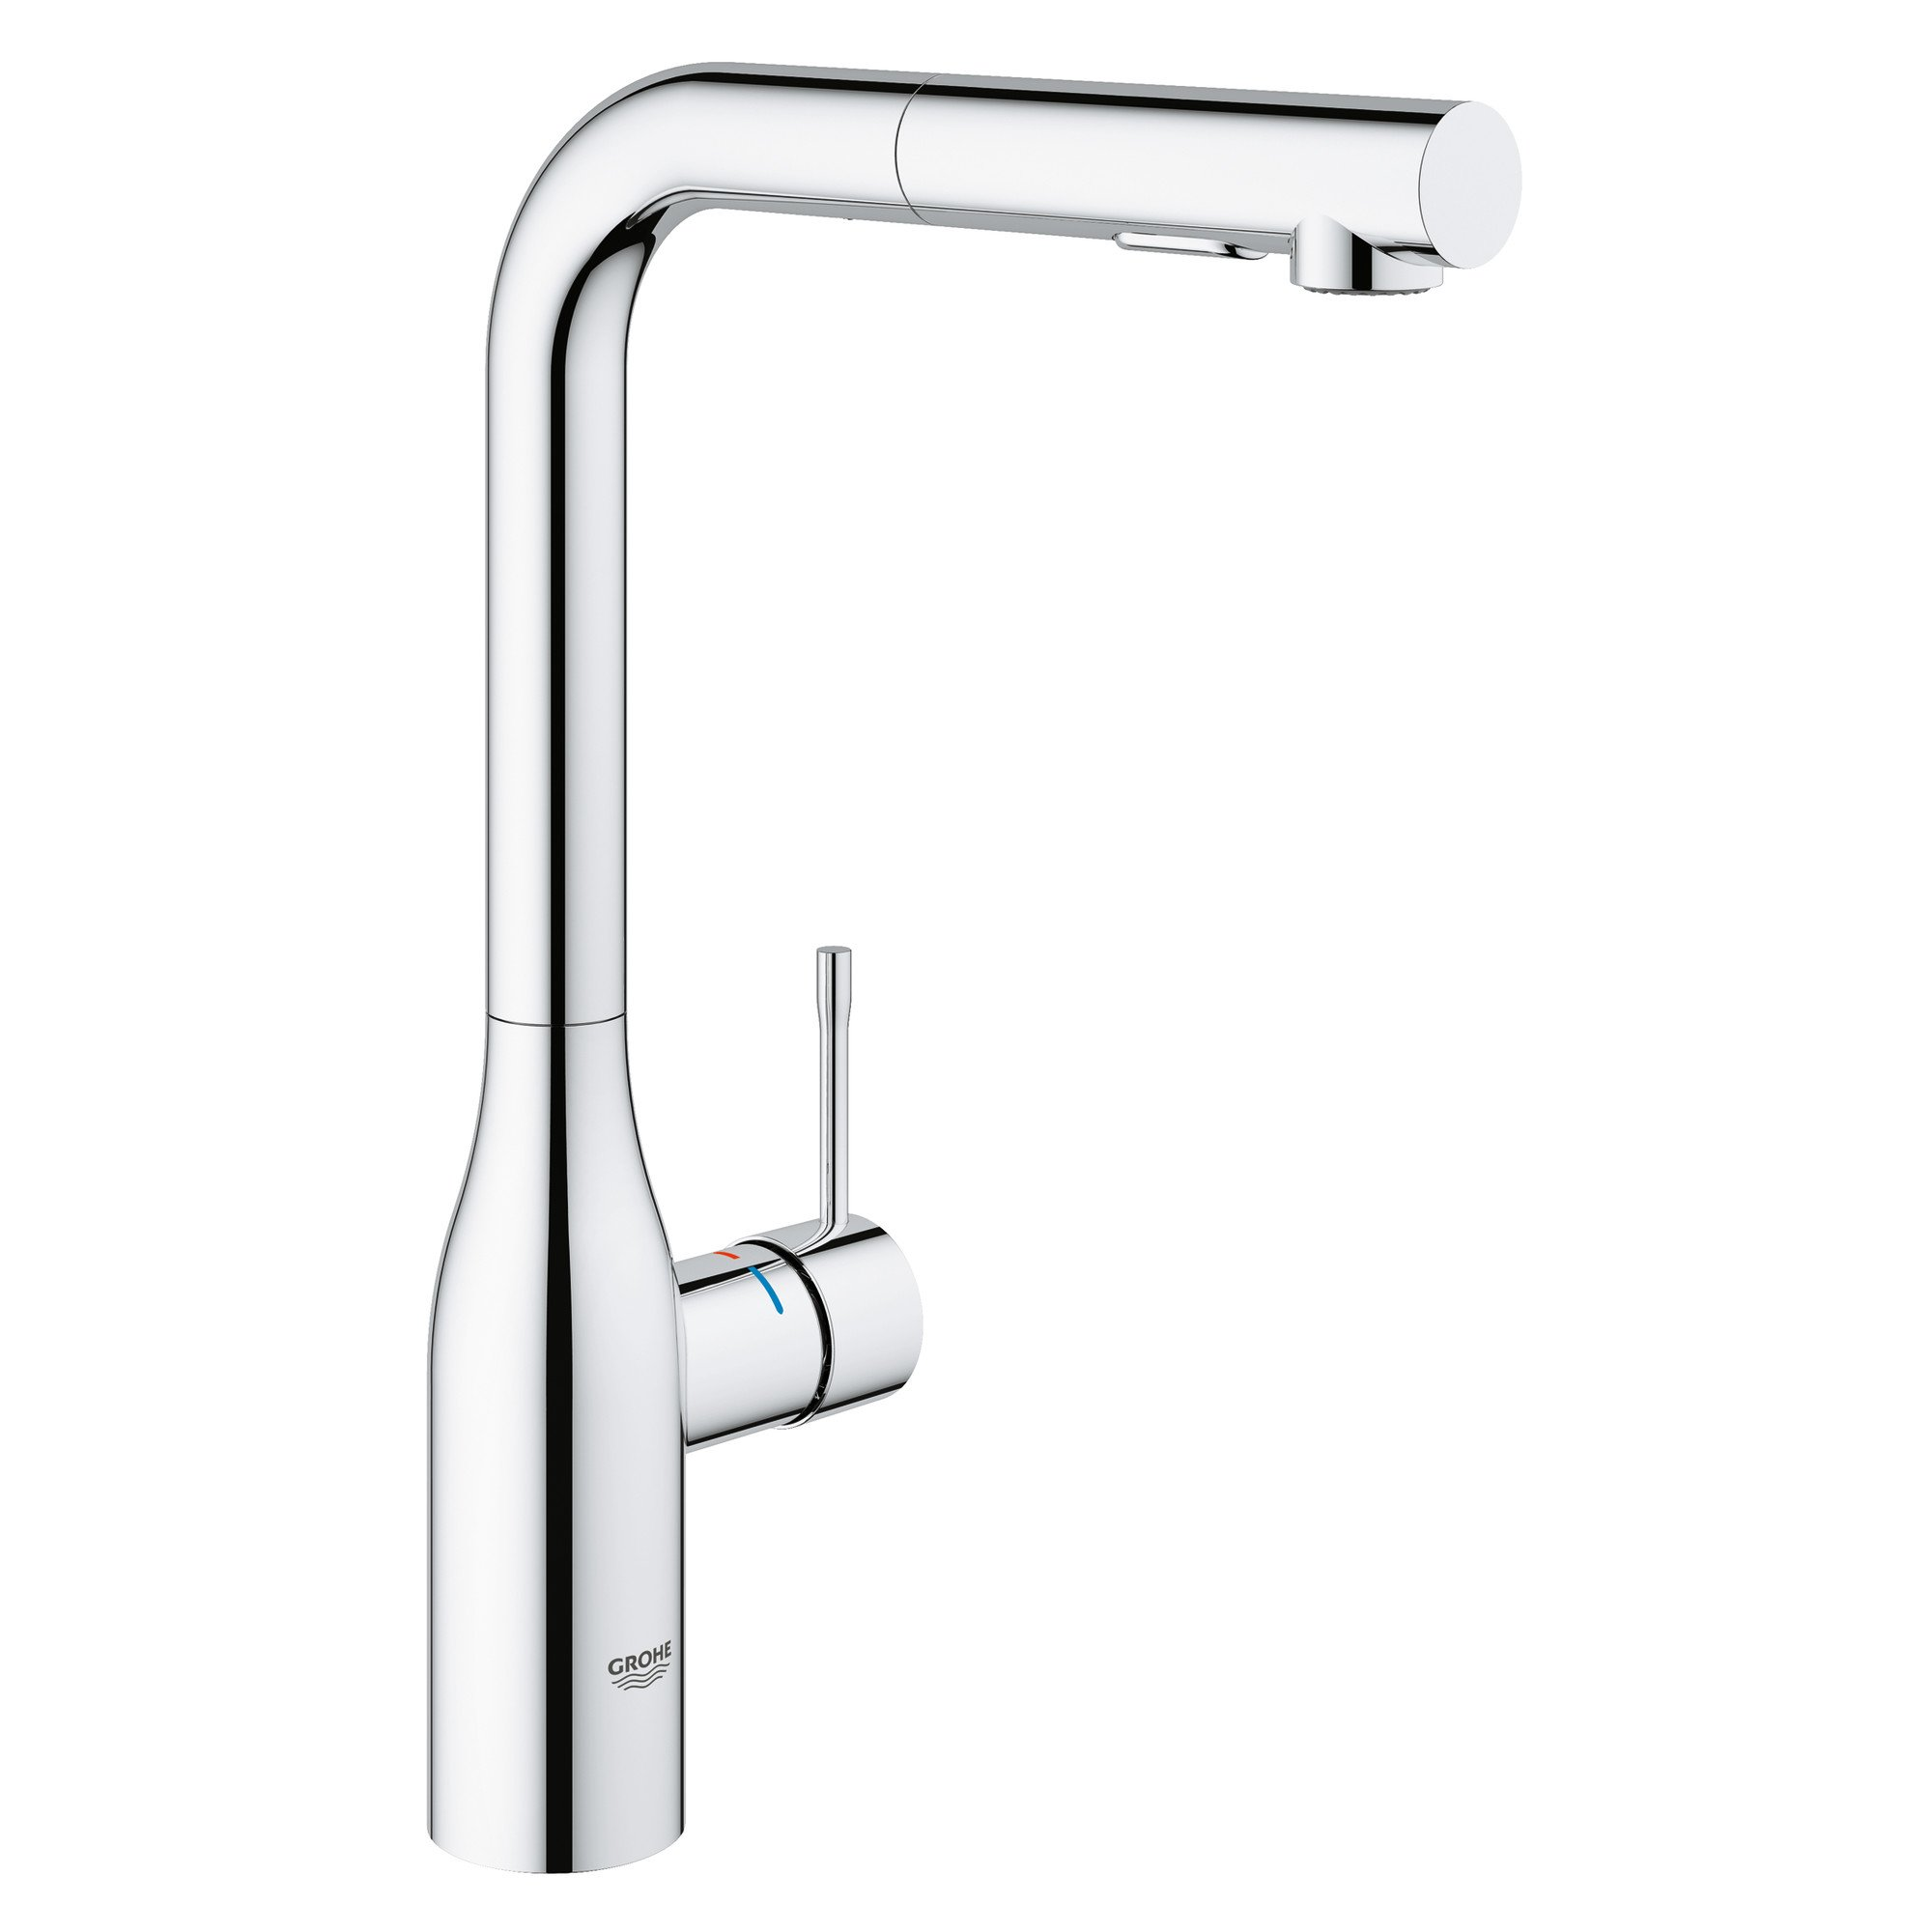 Essence New Single-Handle Pull-Out Kitchen Faucet with Dual Spray by GROHE